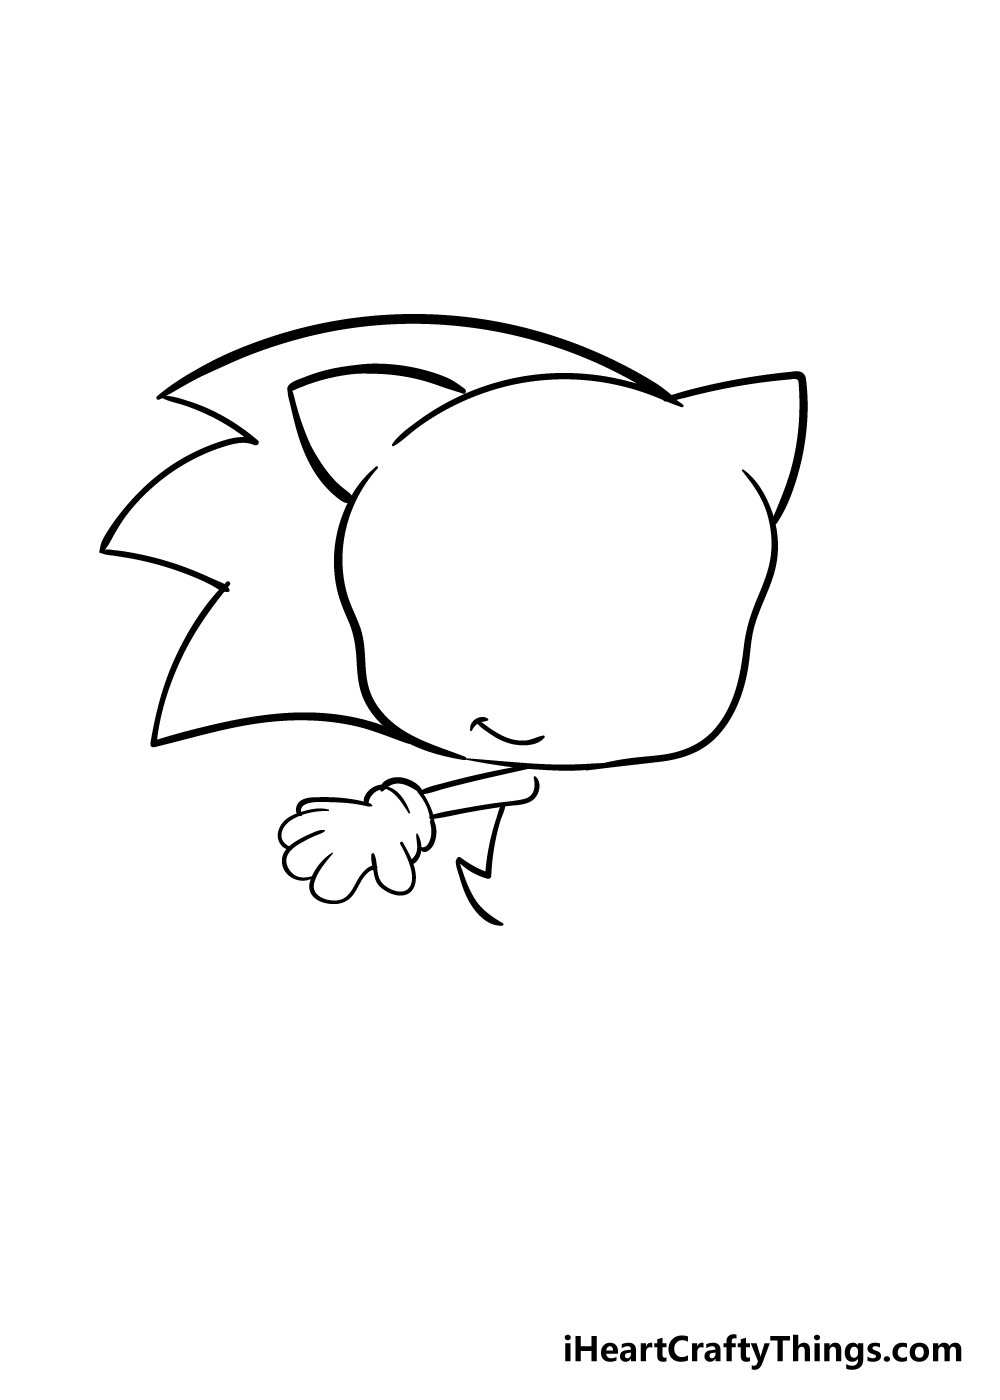 sonic drawing step 4